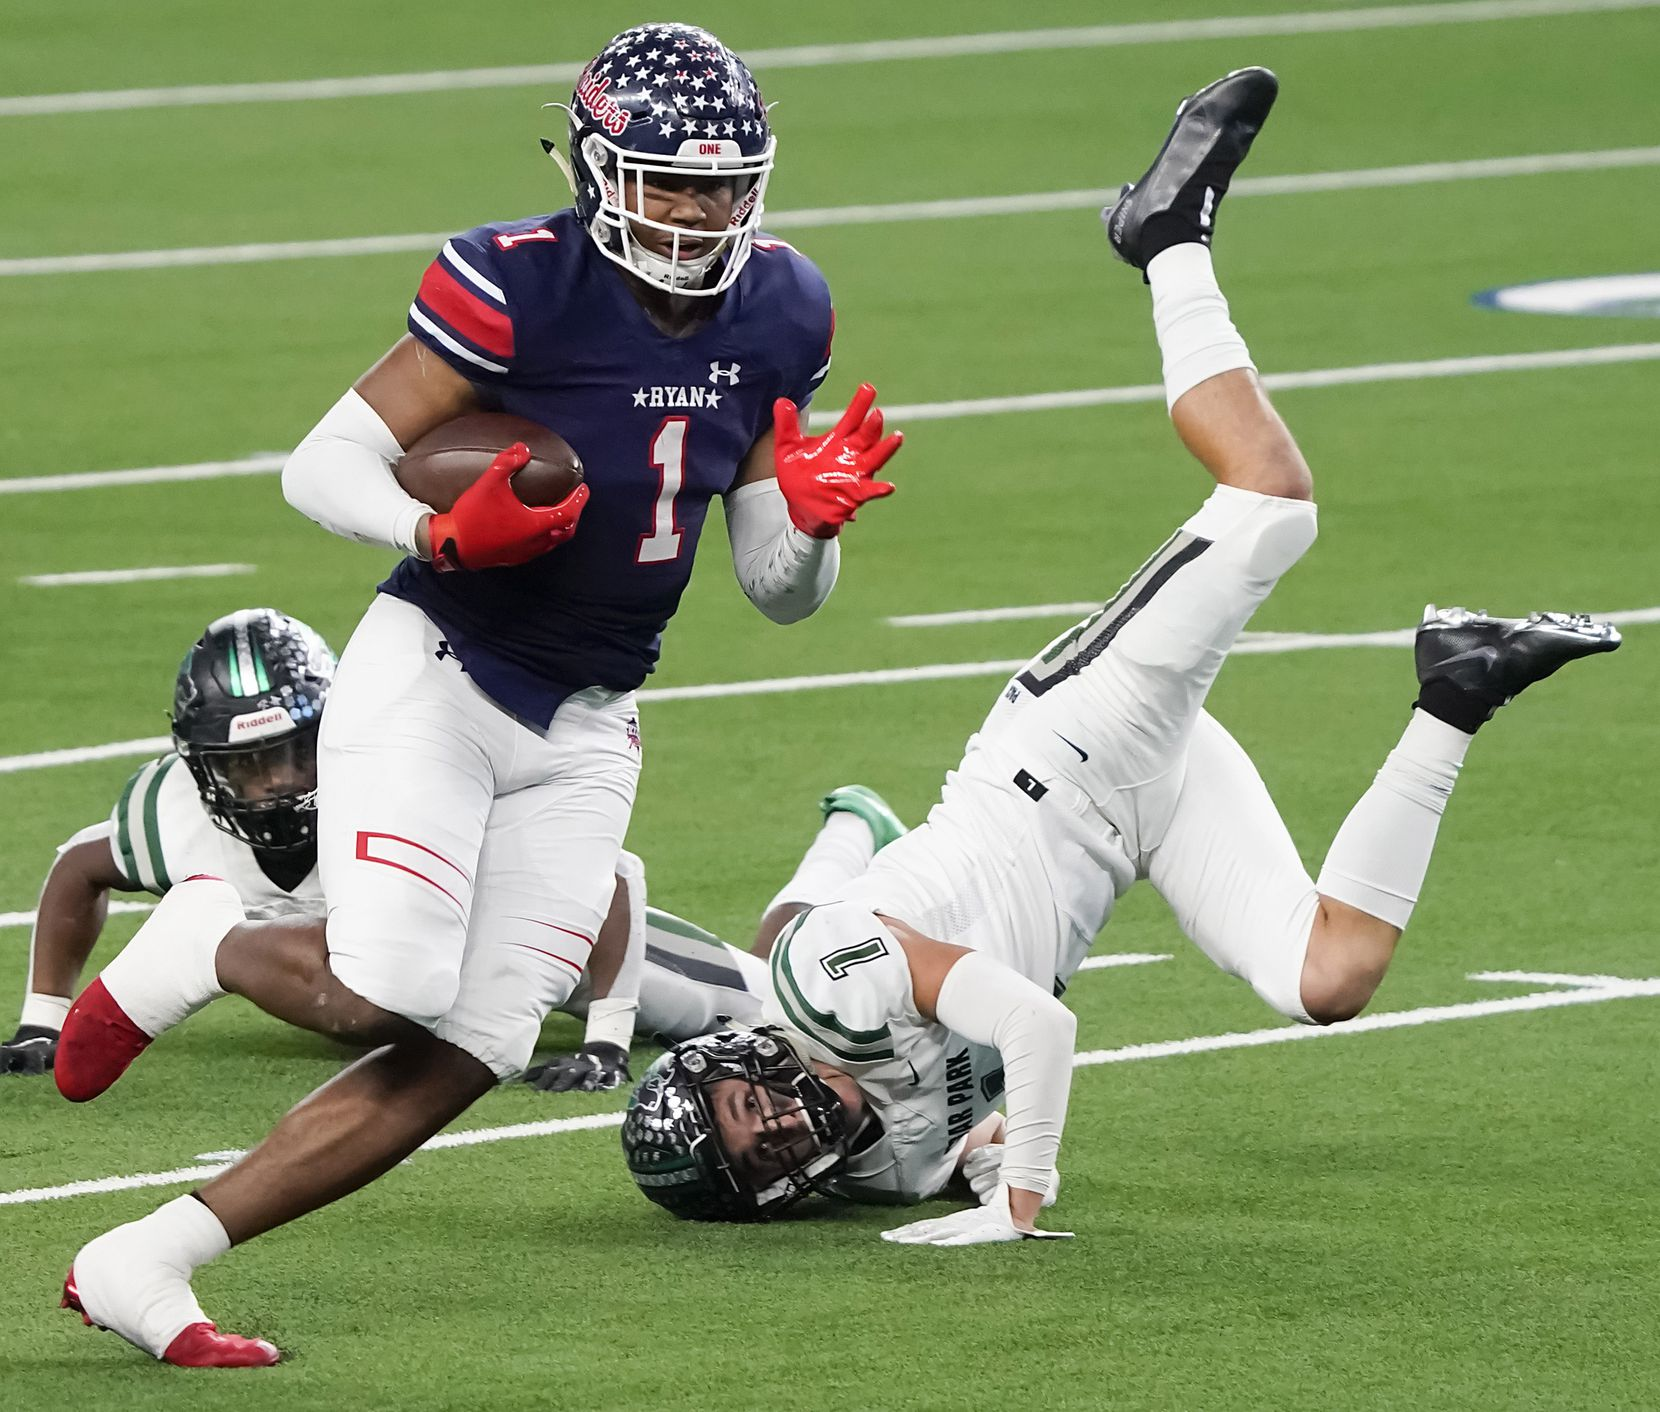 Denton Ryan wide receiver Ja'Tavion Sanders (1) tests past Cedar Park defensive back Cody Marshall gets past during the first half of the Class 5A Division I state football championship game at AT&T Stadium on Friday, Jan. 15, 2021, in Arlington, Texas. (Smiley N. Pool/The Dallas Morning News)